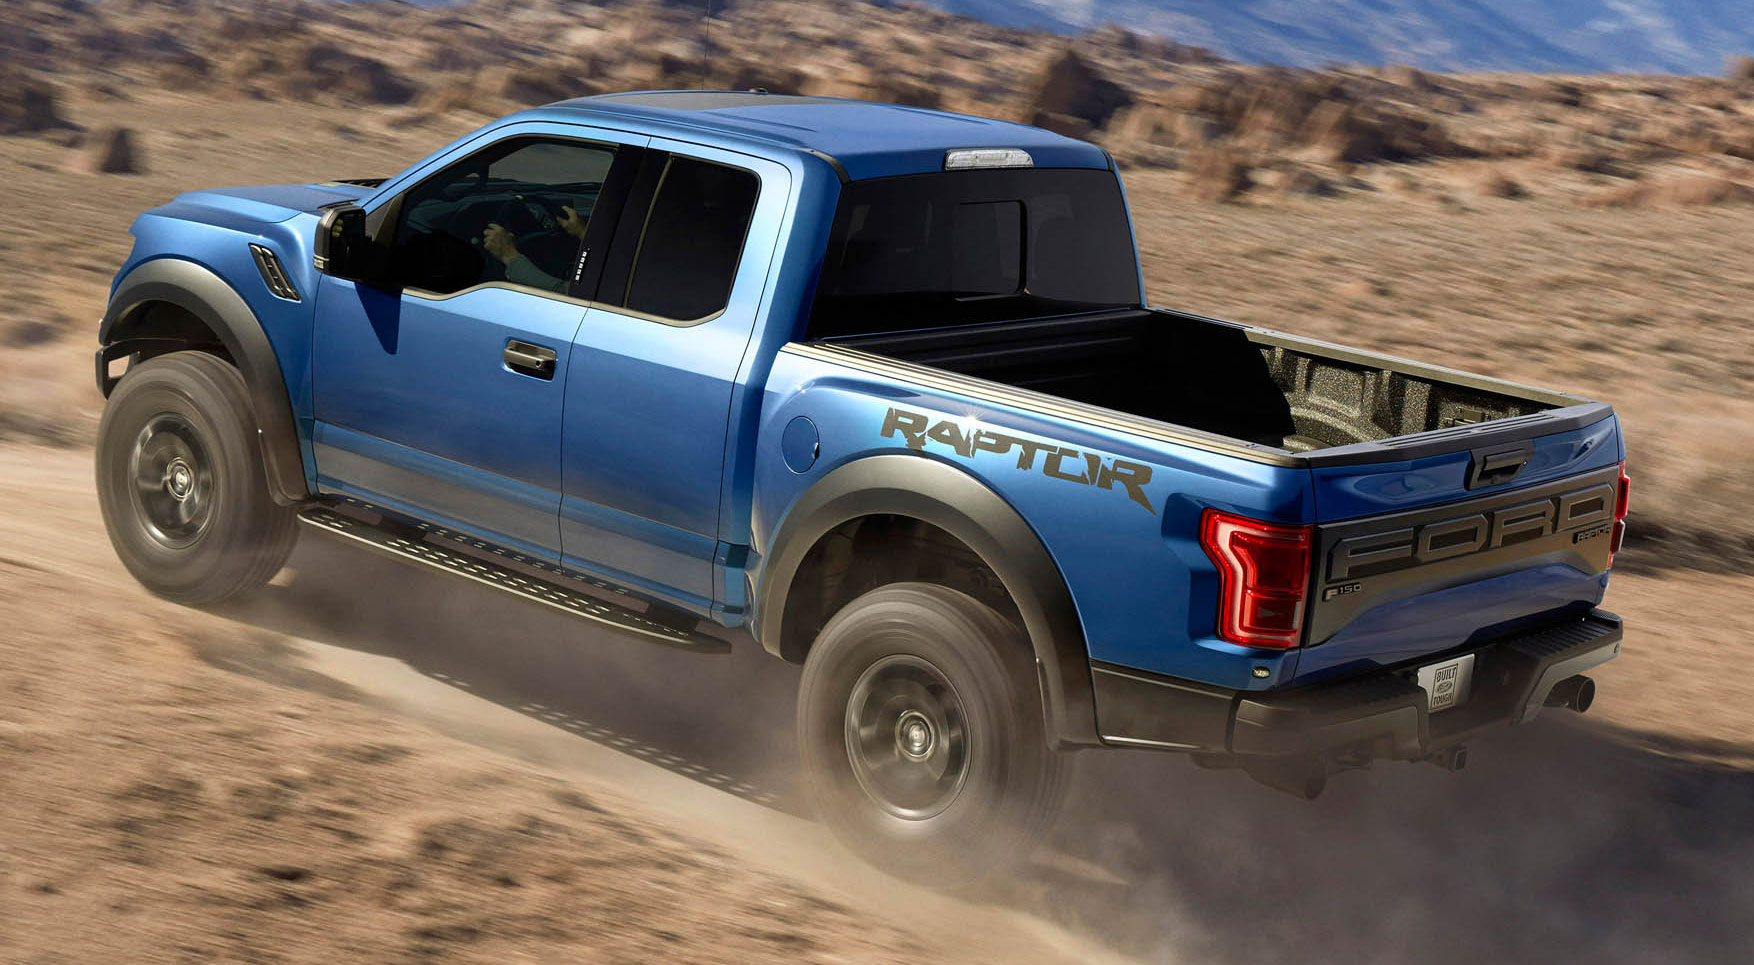 2016 Ford F 150 Svt Raptor Concept And Price Pictures To Pin On